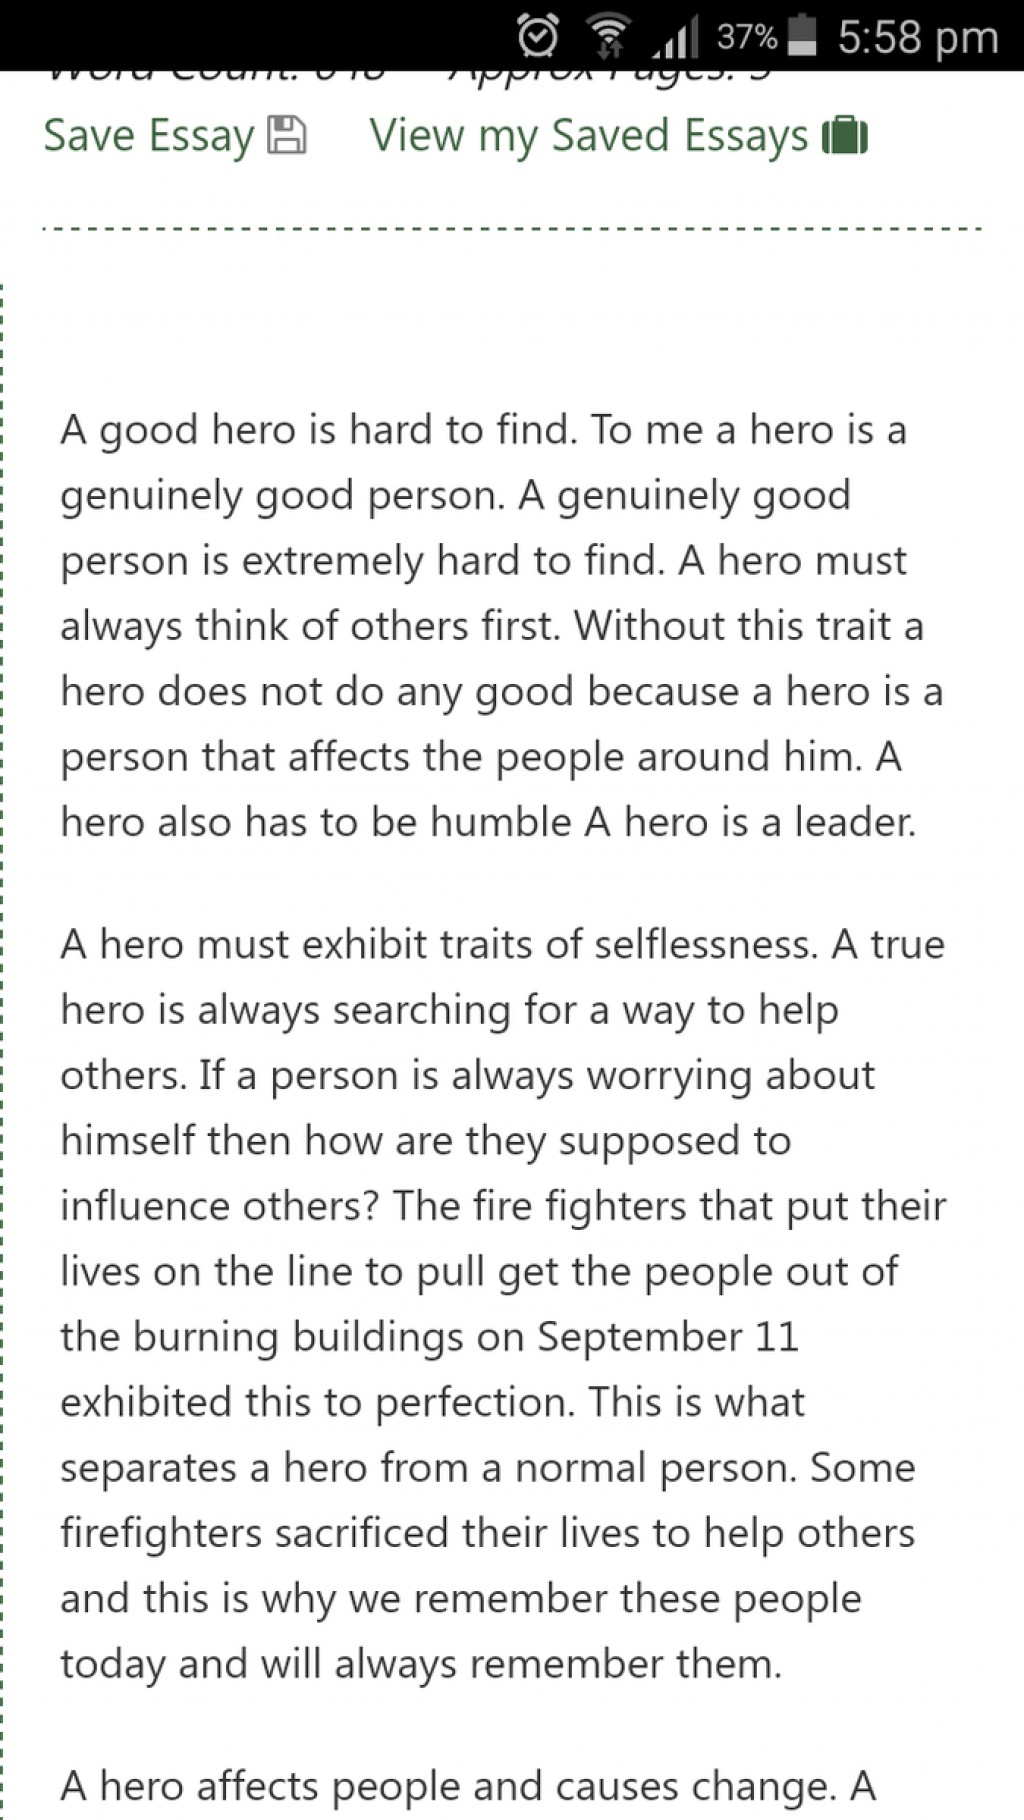 015 Essay Example My Real Life Hero Fascinating Unsung In Secret As A Large